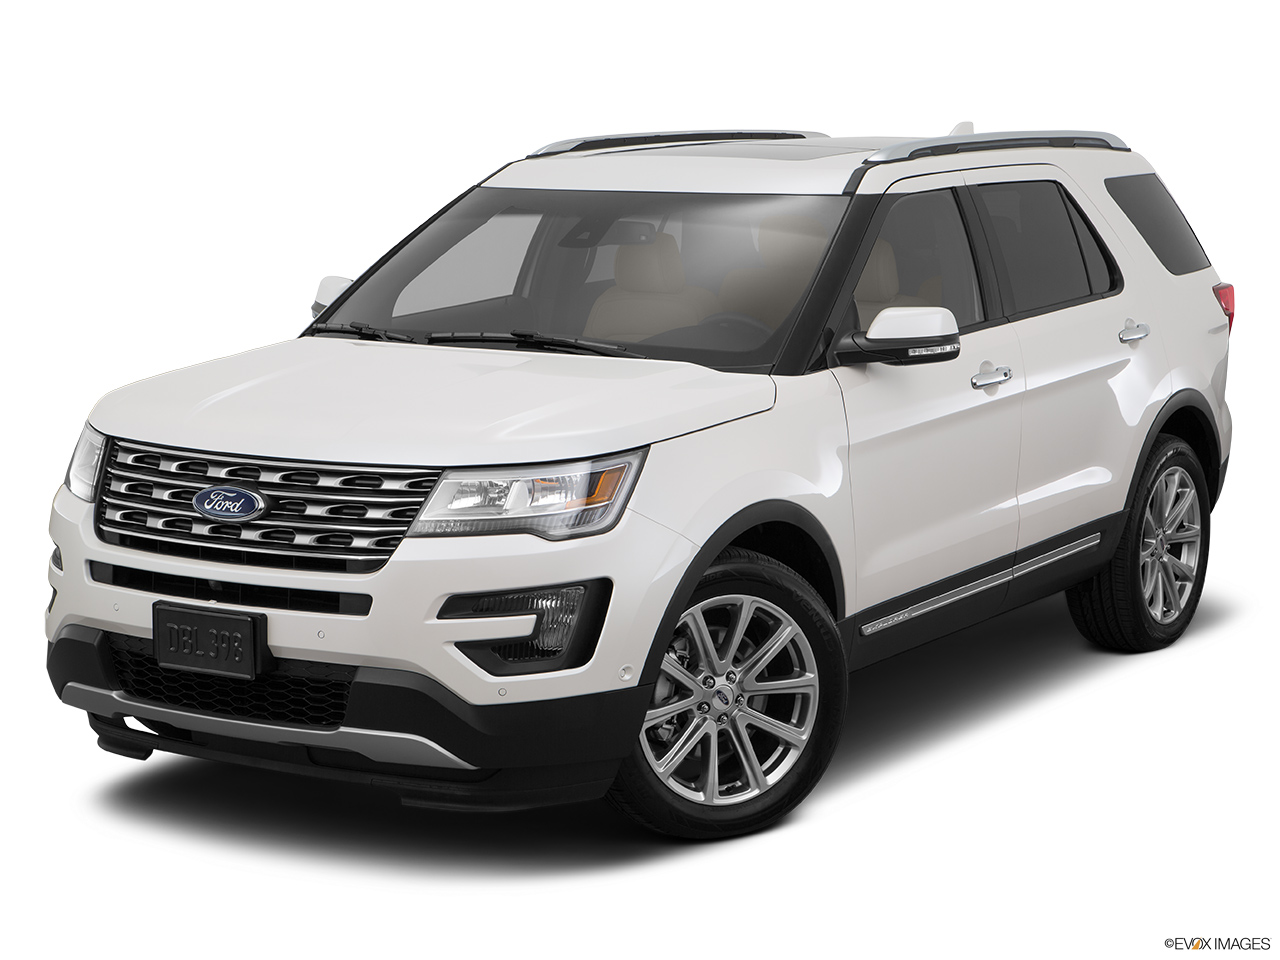 ford explorer 2017 3 5l v6 ltd awd full option in qatar new car prices specs reviews photos. Black Bedroom Furniture Sets. Home Design Ideas